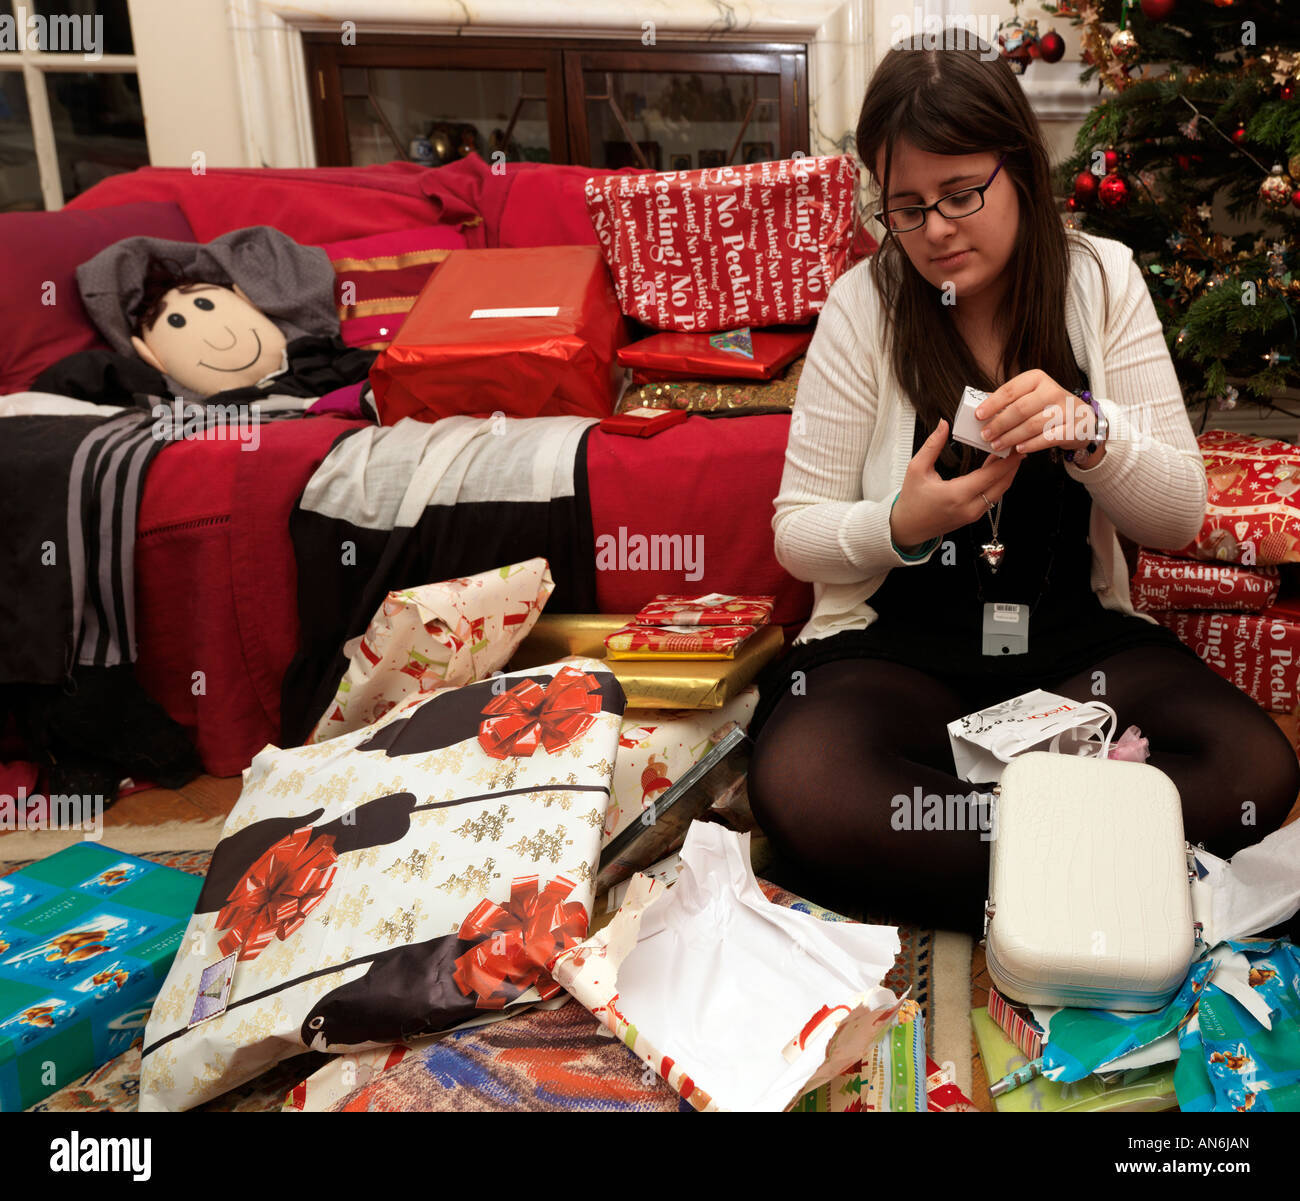 Teenager Opening Presents Christmas Morning - Stock Image